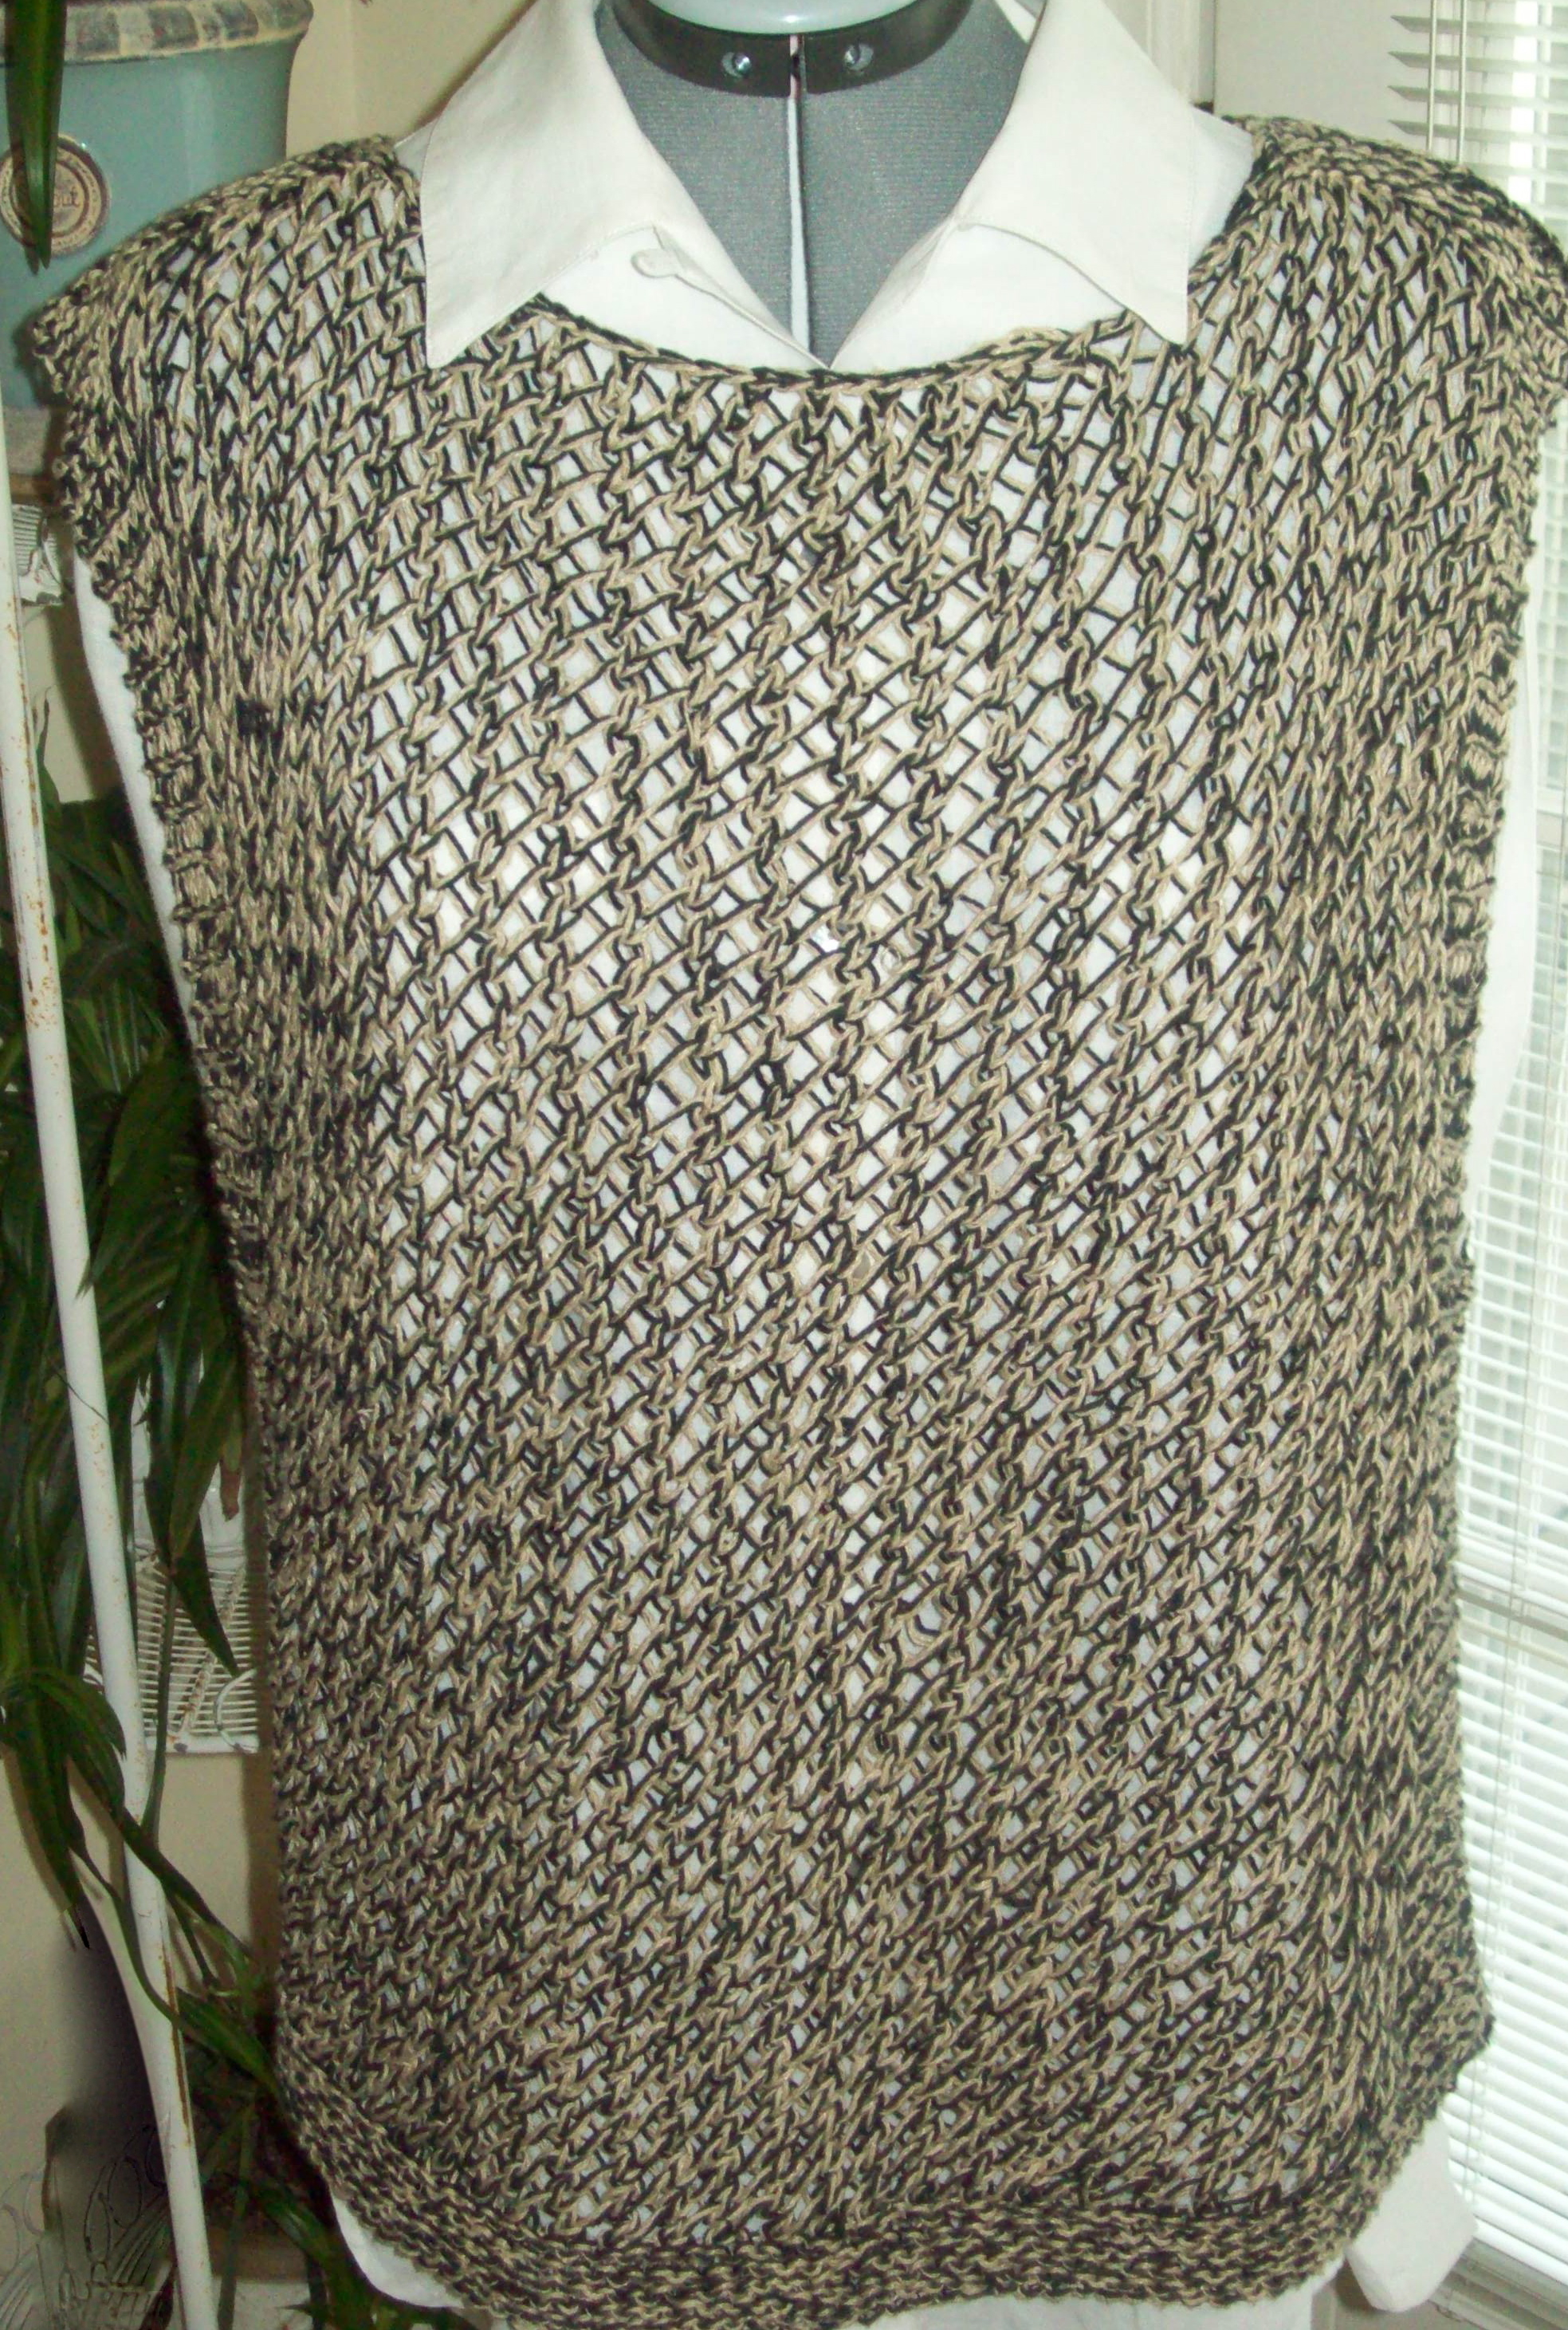 Knitting on the beach elegant knit pullover this quick knit pattern is created by holding two lightweight yarns together the elegant knit pullover has an open weave pattern with an easy to work bankloansurffo Images